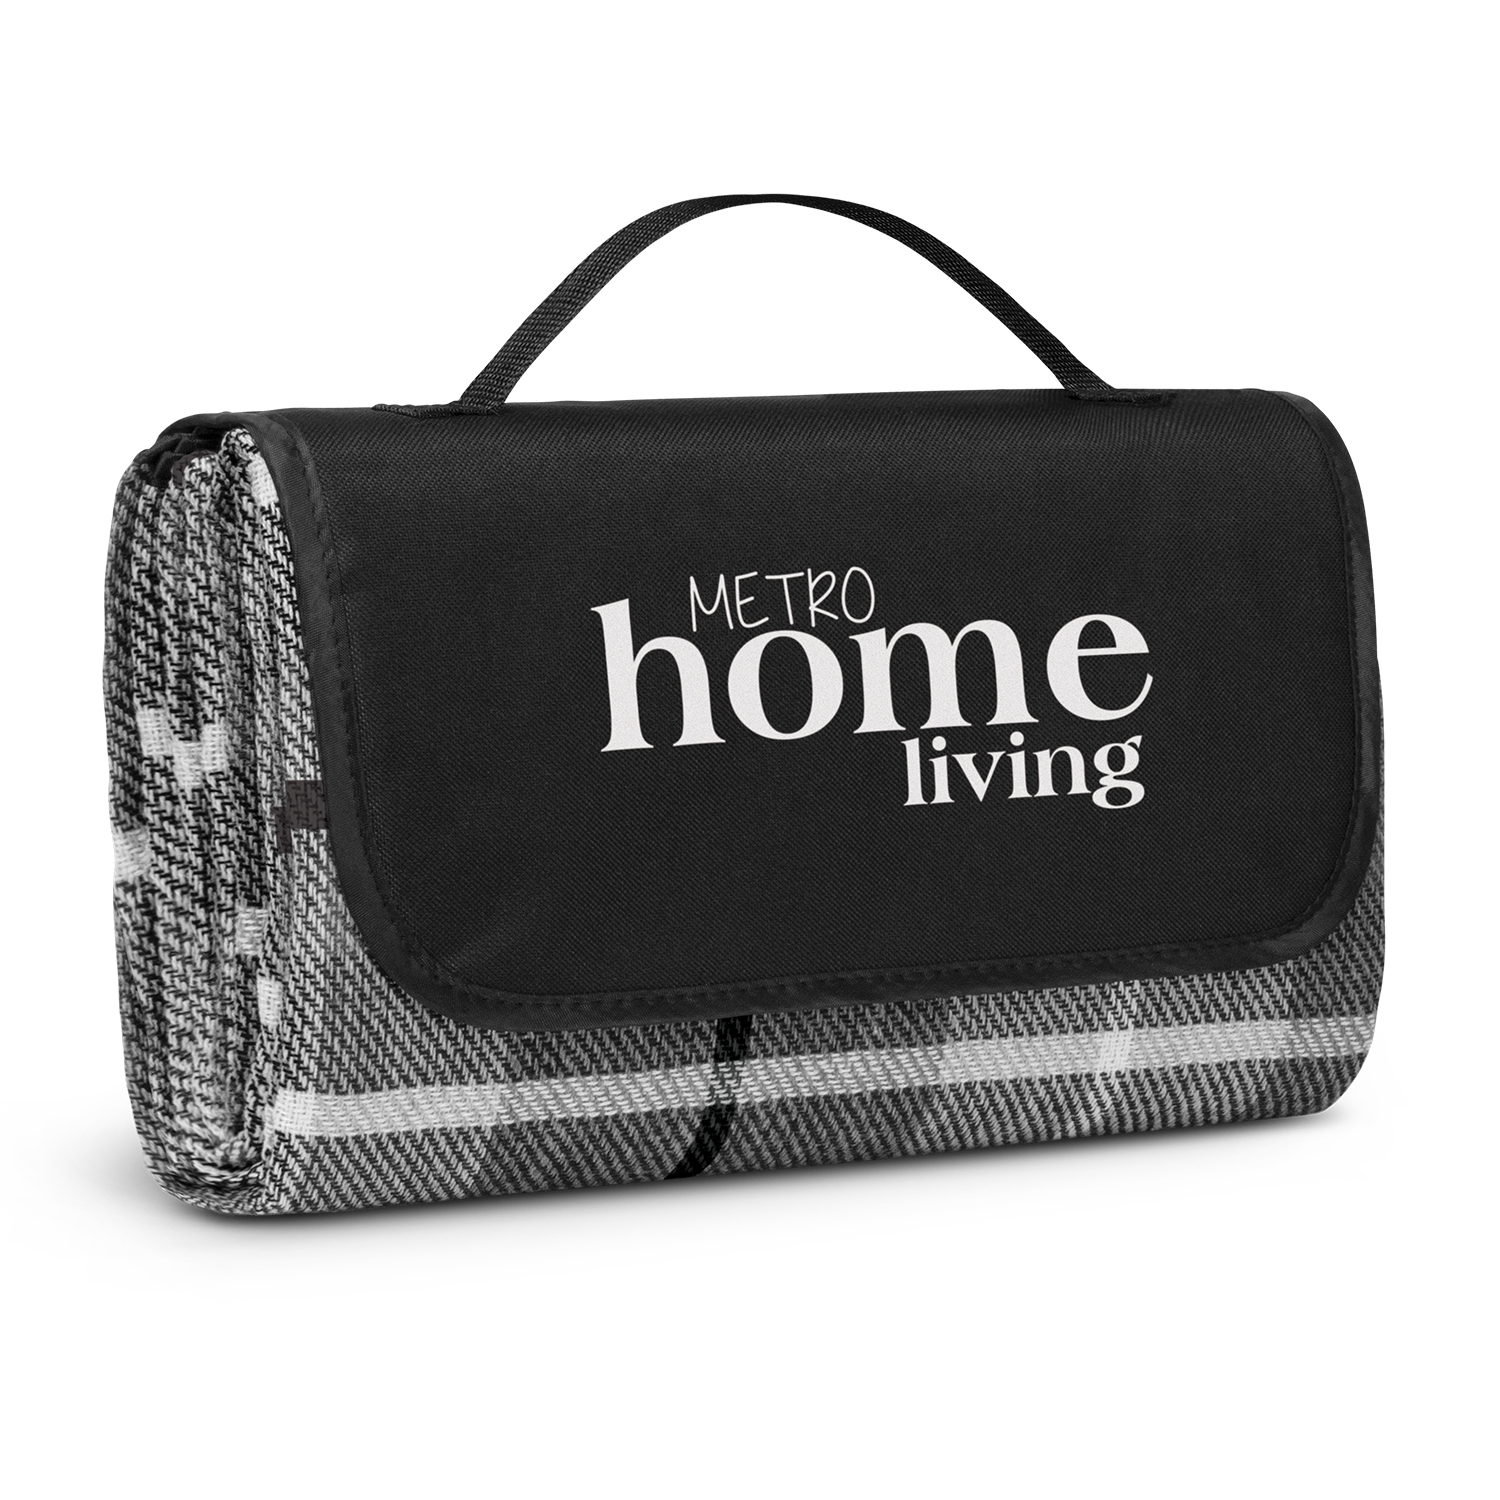 Denver Picnic Blanket – 112559